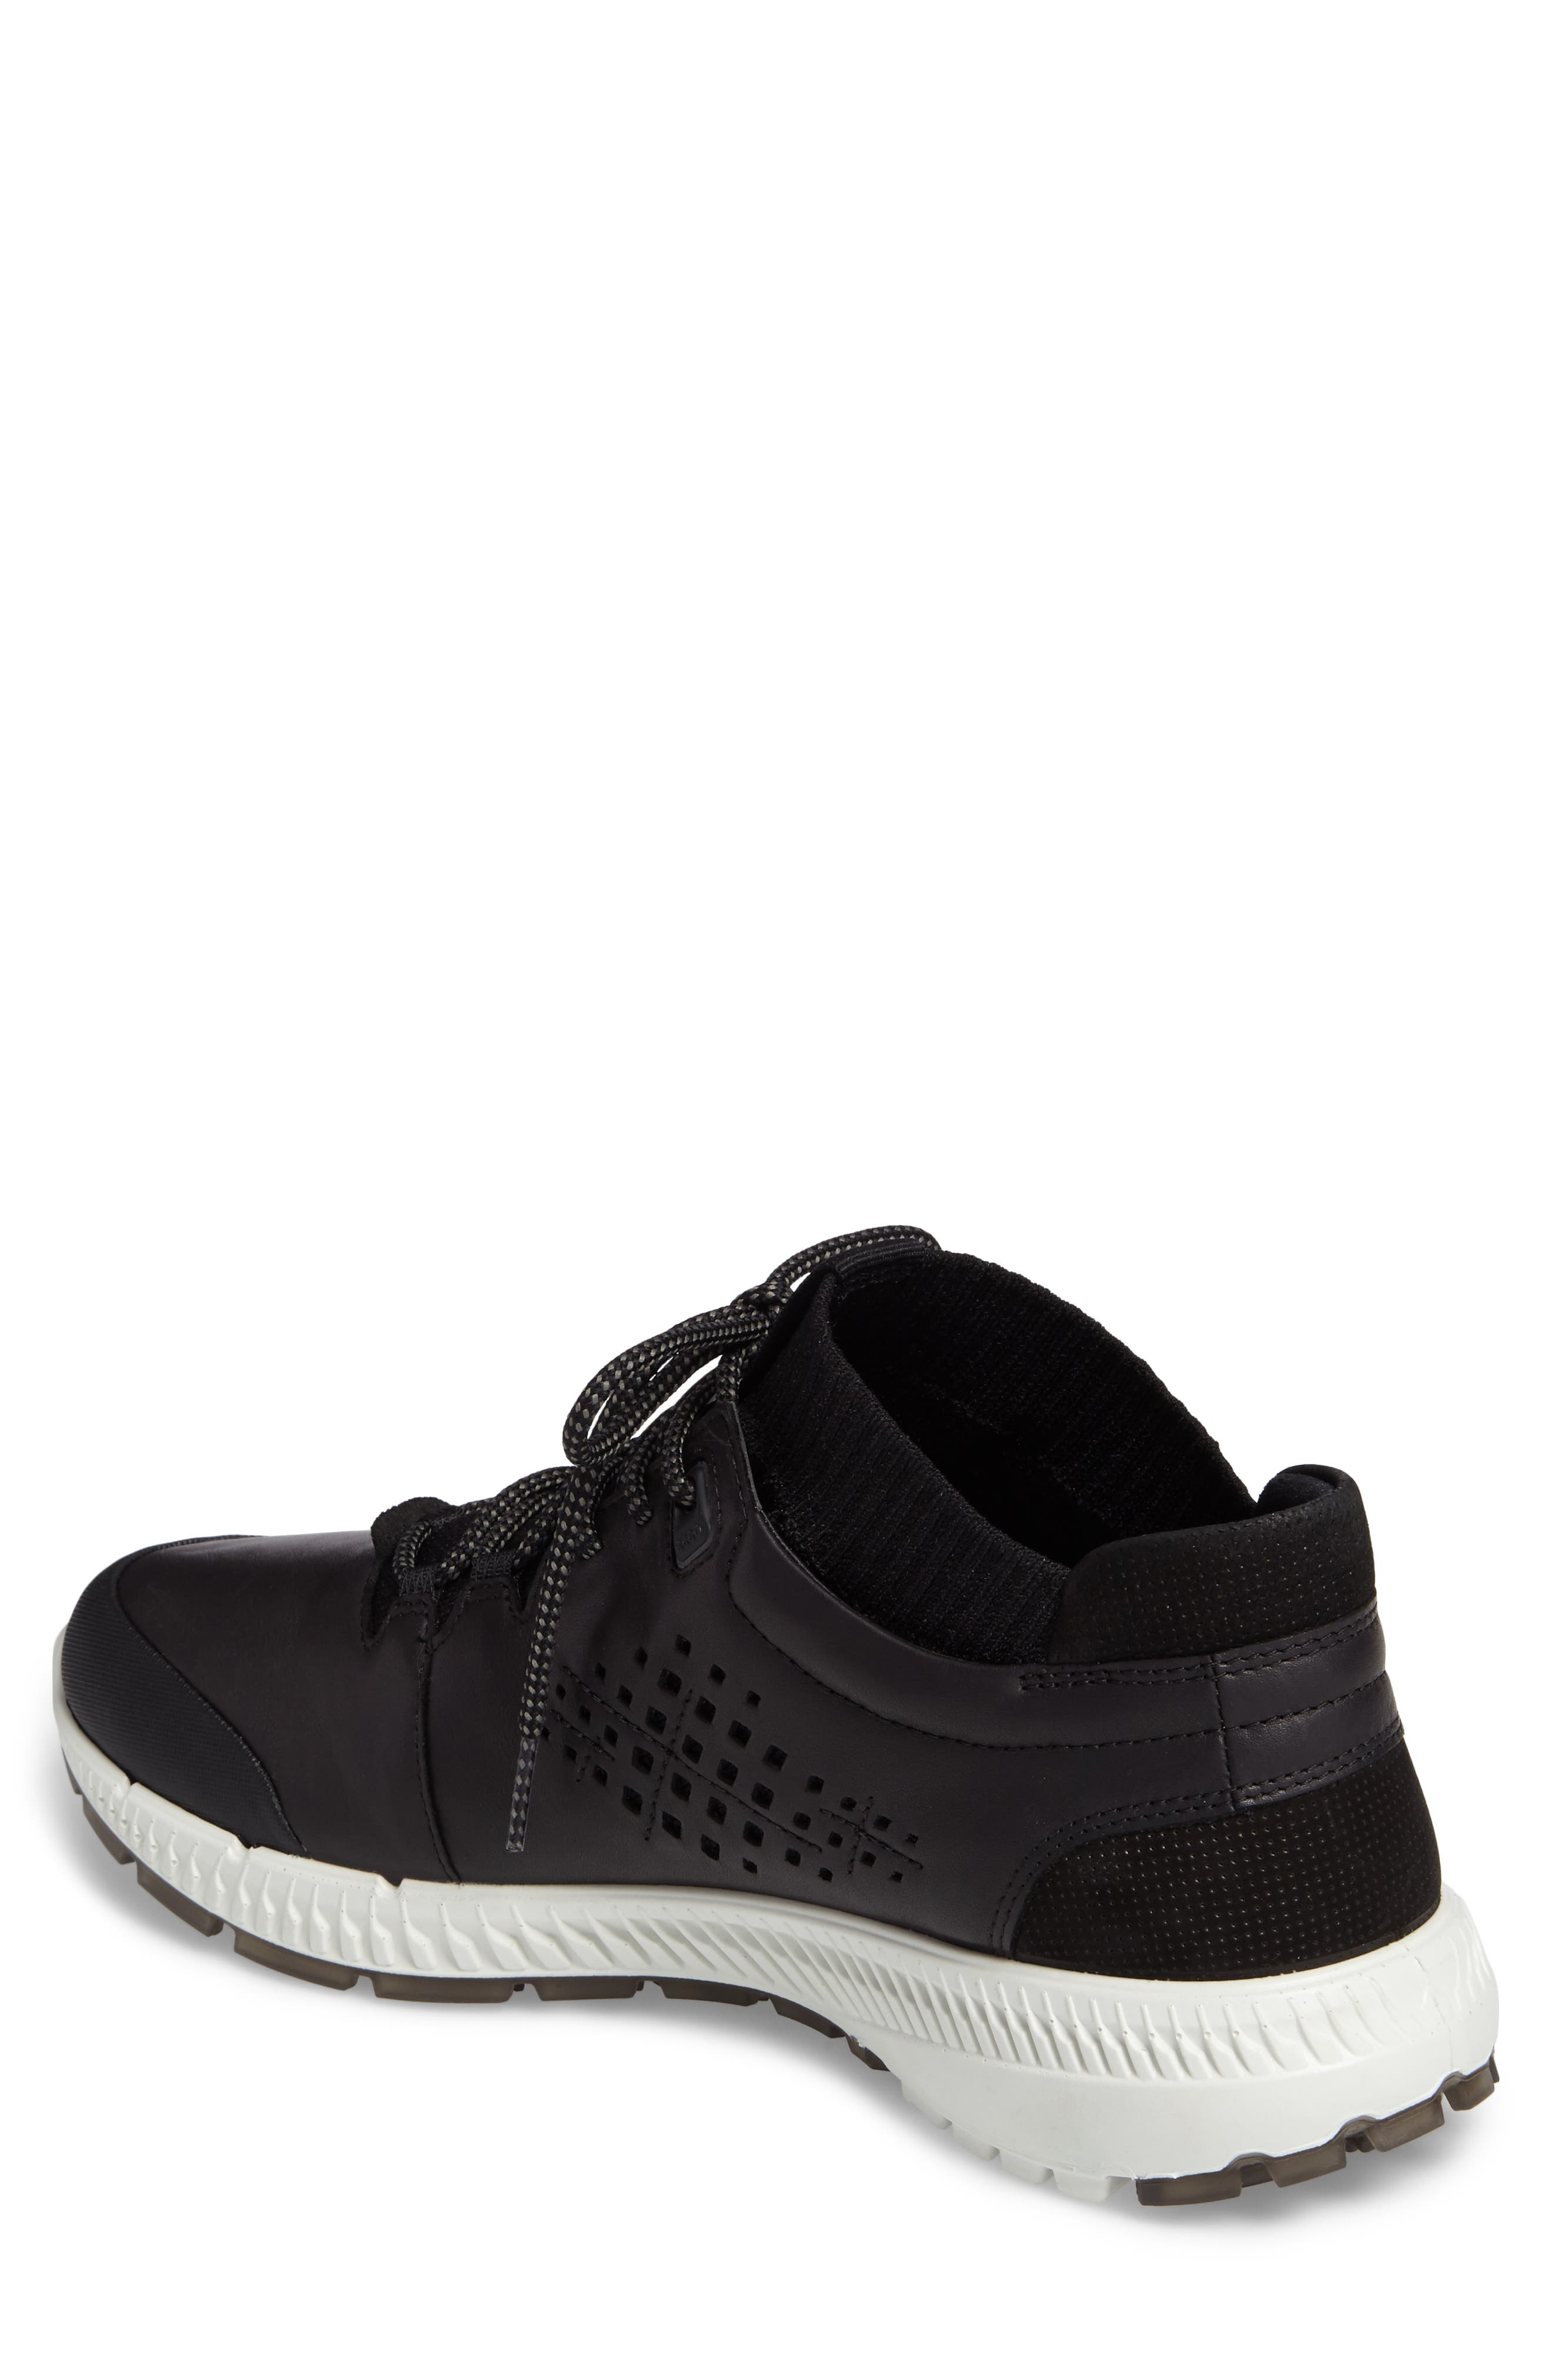 Intrinsic Mid Sneaker,                             Alternate thumbnail 2, color,                             001